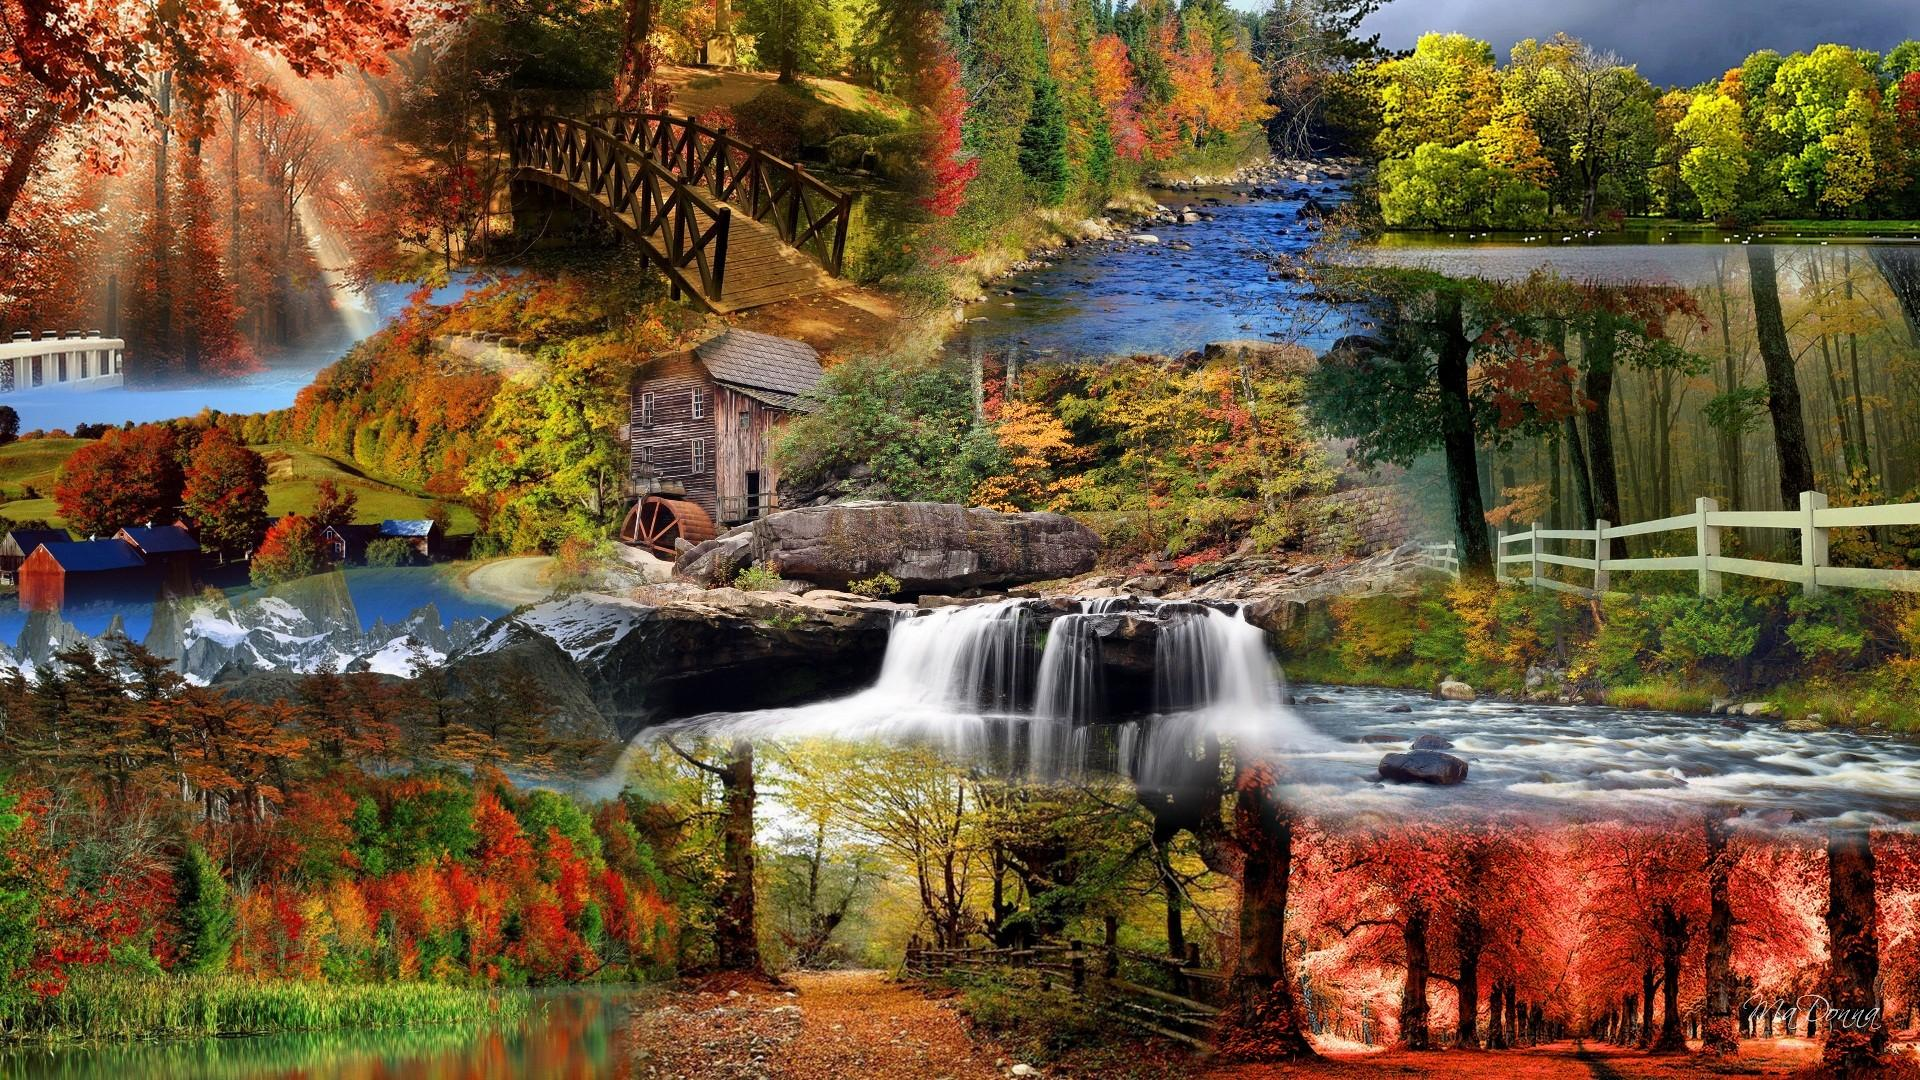 Fall Cabin The Woods Wallpaper Autumn Glory Wallpaper Nature And Landscape Wallpaper